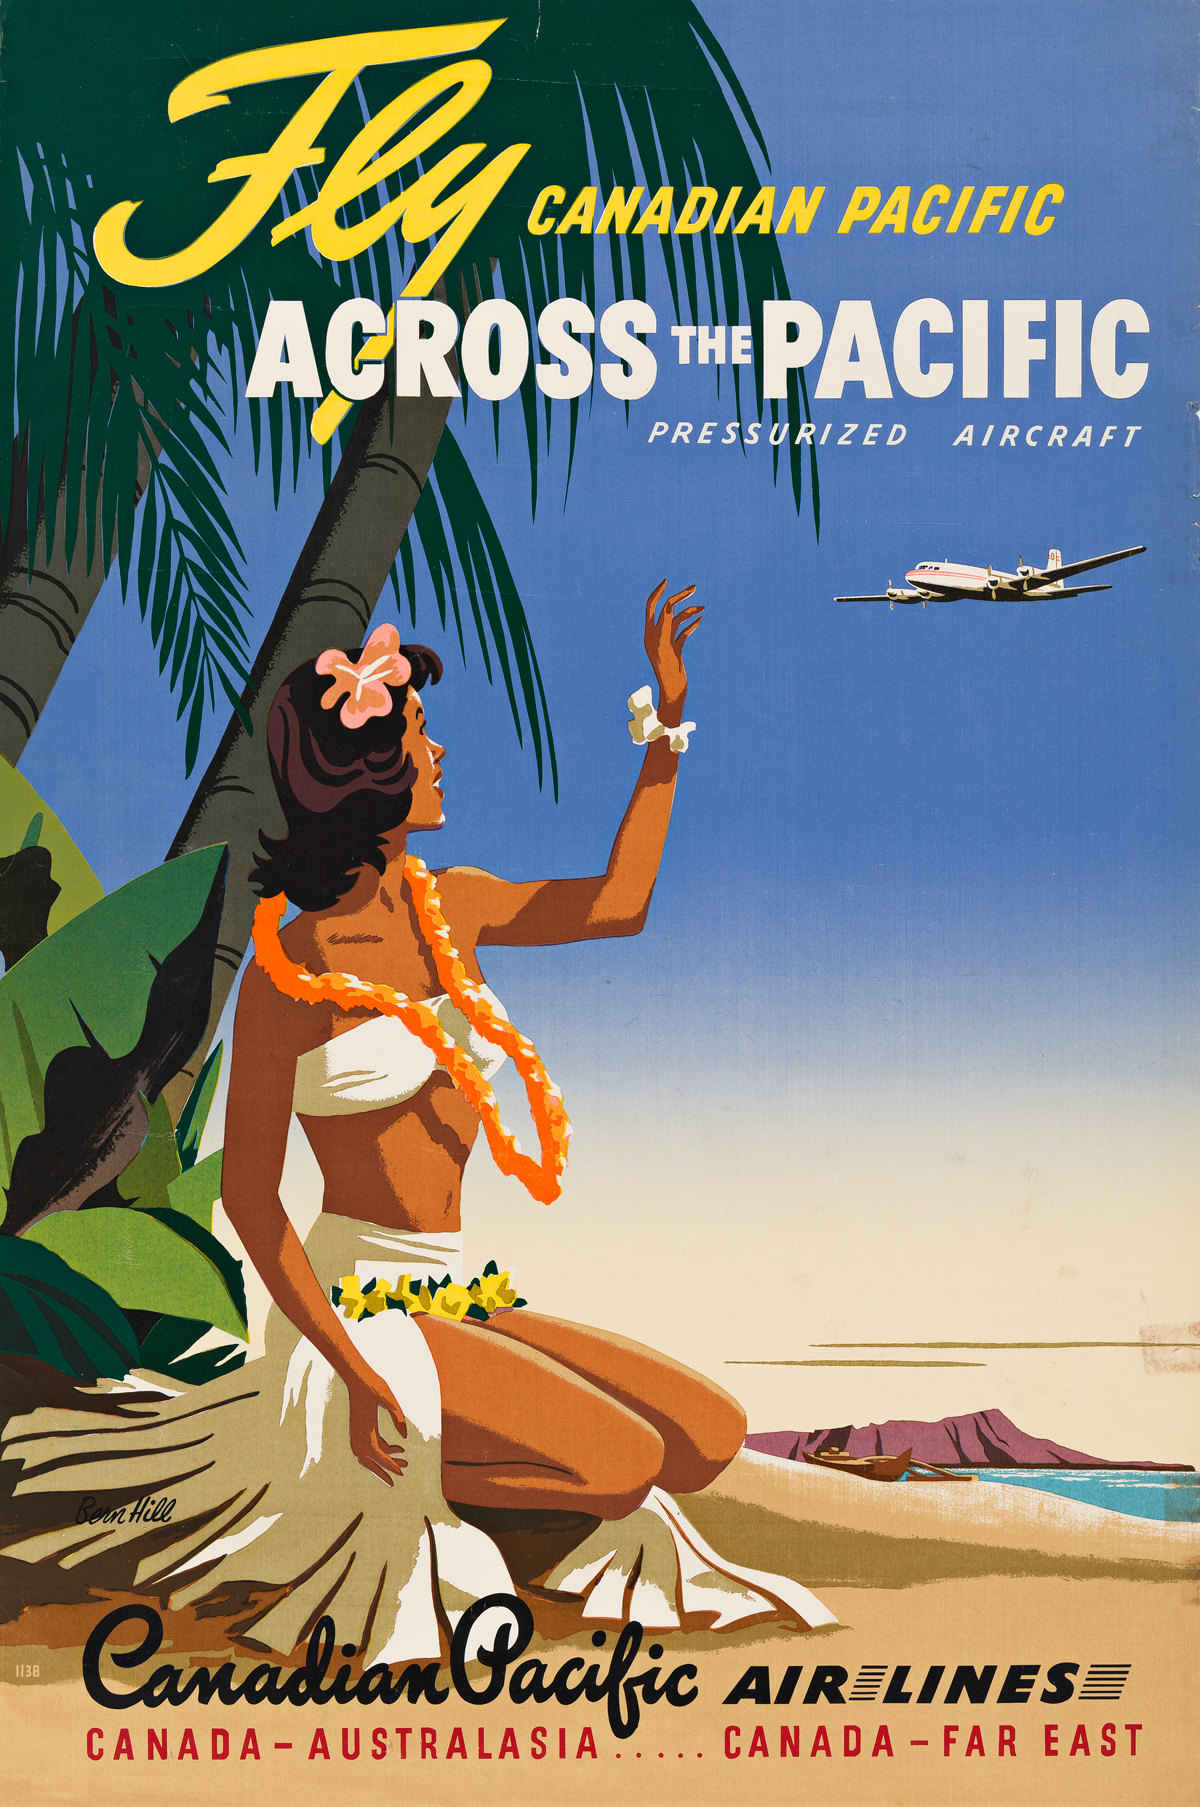 Bern Hill (1911-1977).  FLY CANADIAN PACIFIC / ACROSS THE PACIFIC. Circa 1950s.